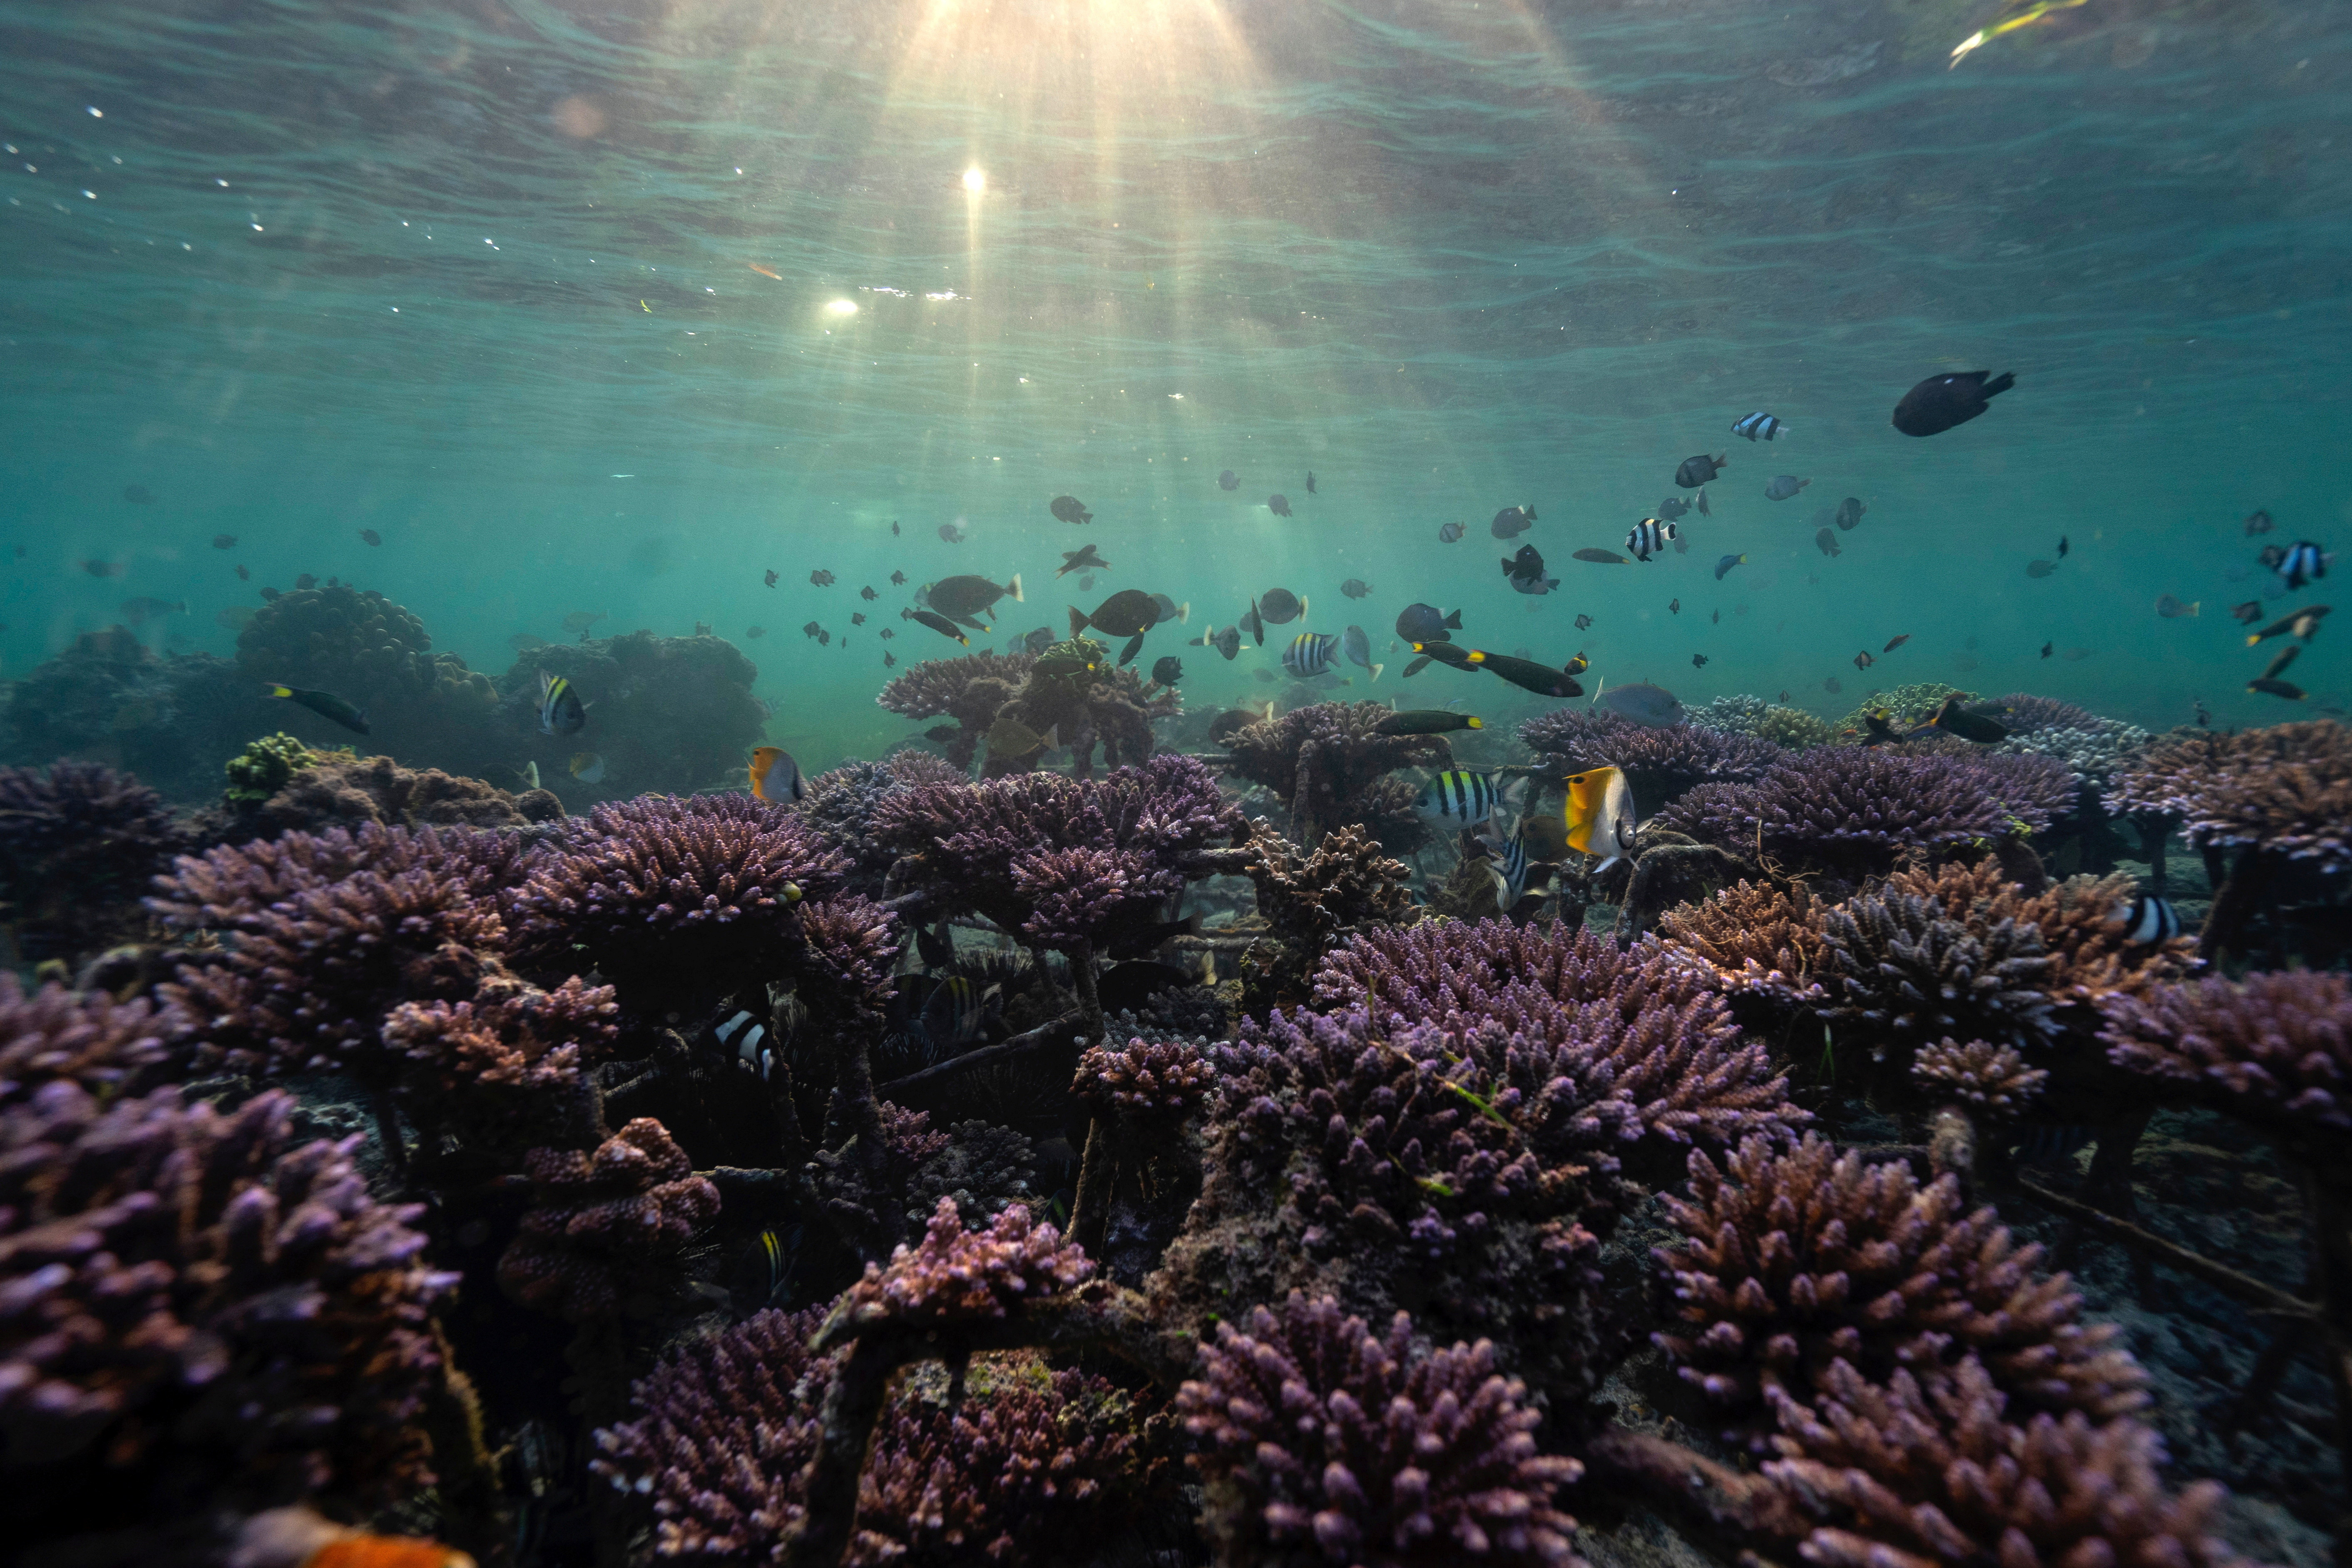 Fish swim at a coral reef garden in Nusa Dua, Bali, Indonesia, May 28, 2021. Picture taken May 28, 2021. REUTERS/Nyimas Laula - RC26PN9T0YJ5